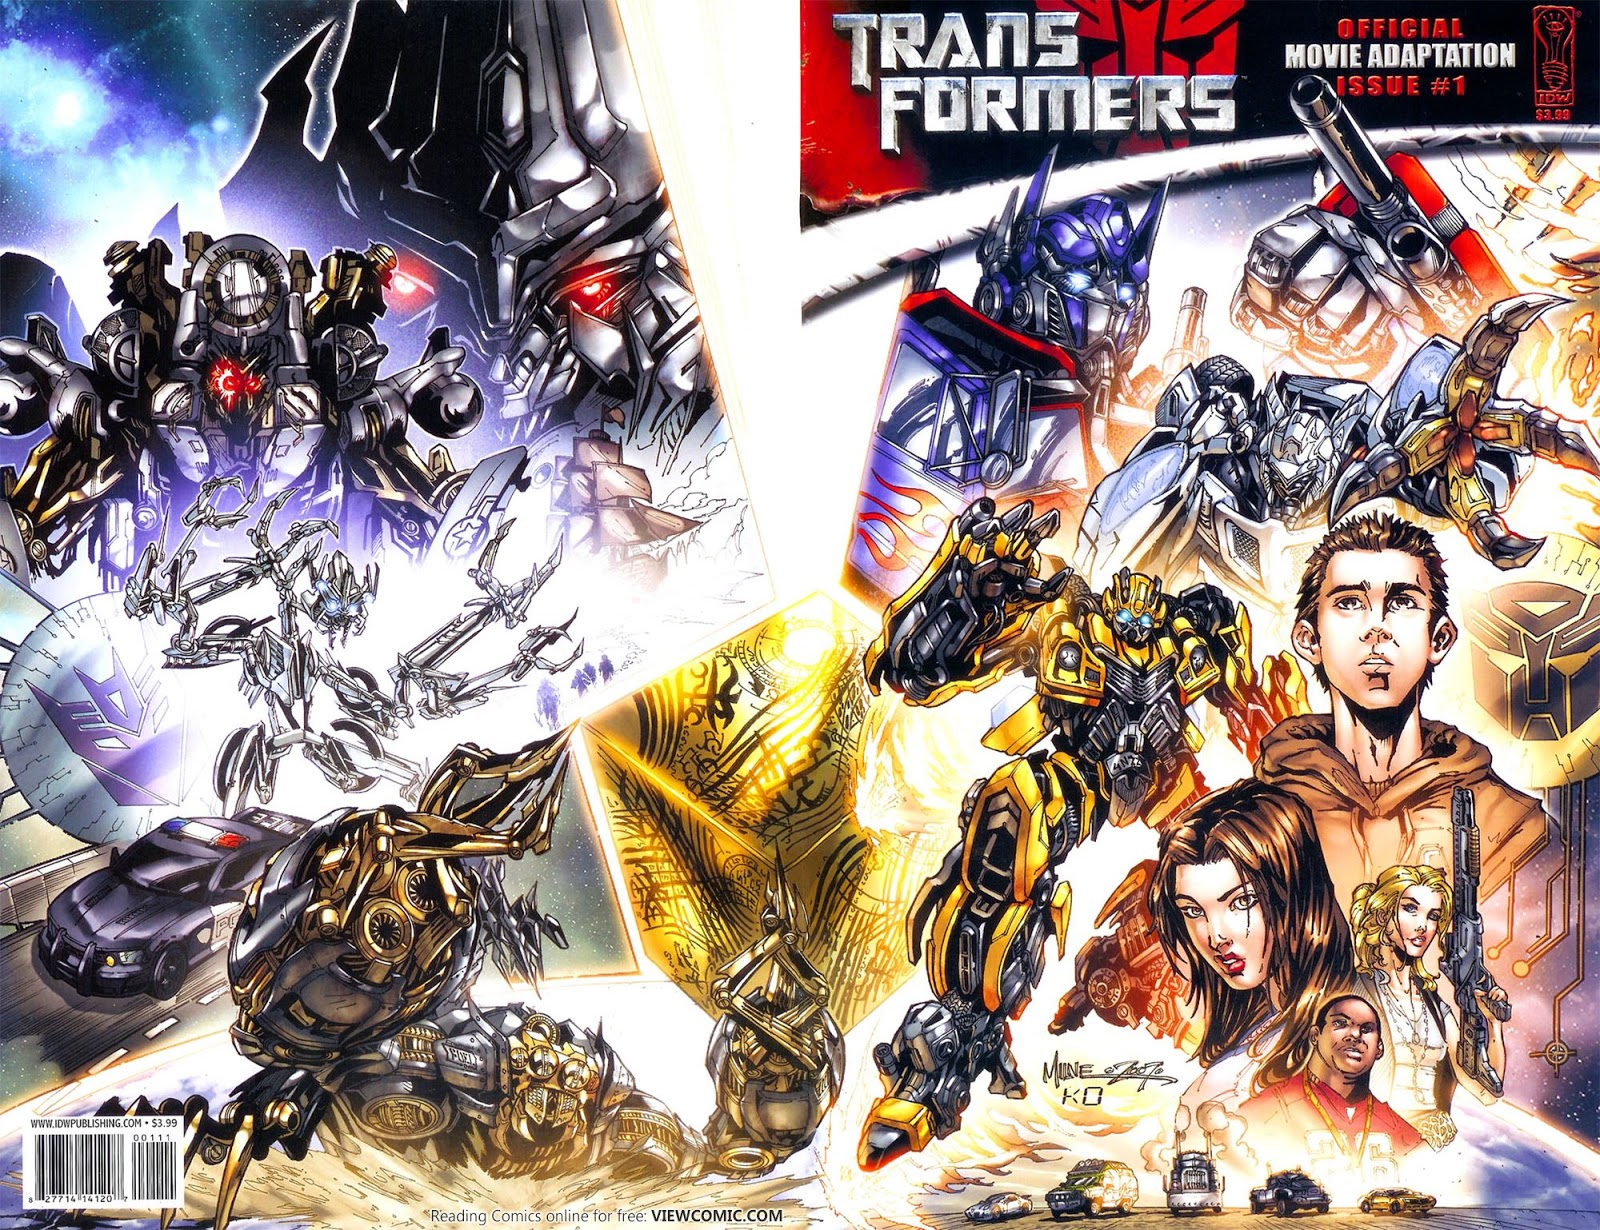 Transformers – Movie Adaptation 01 (of 4) (2007) | Viewcomic